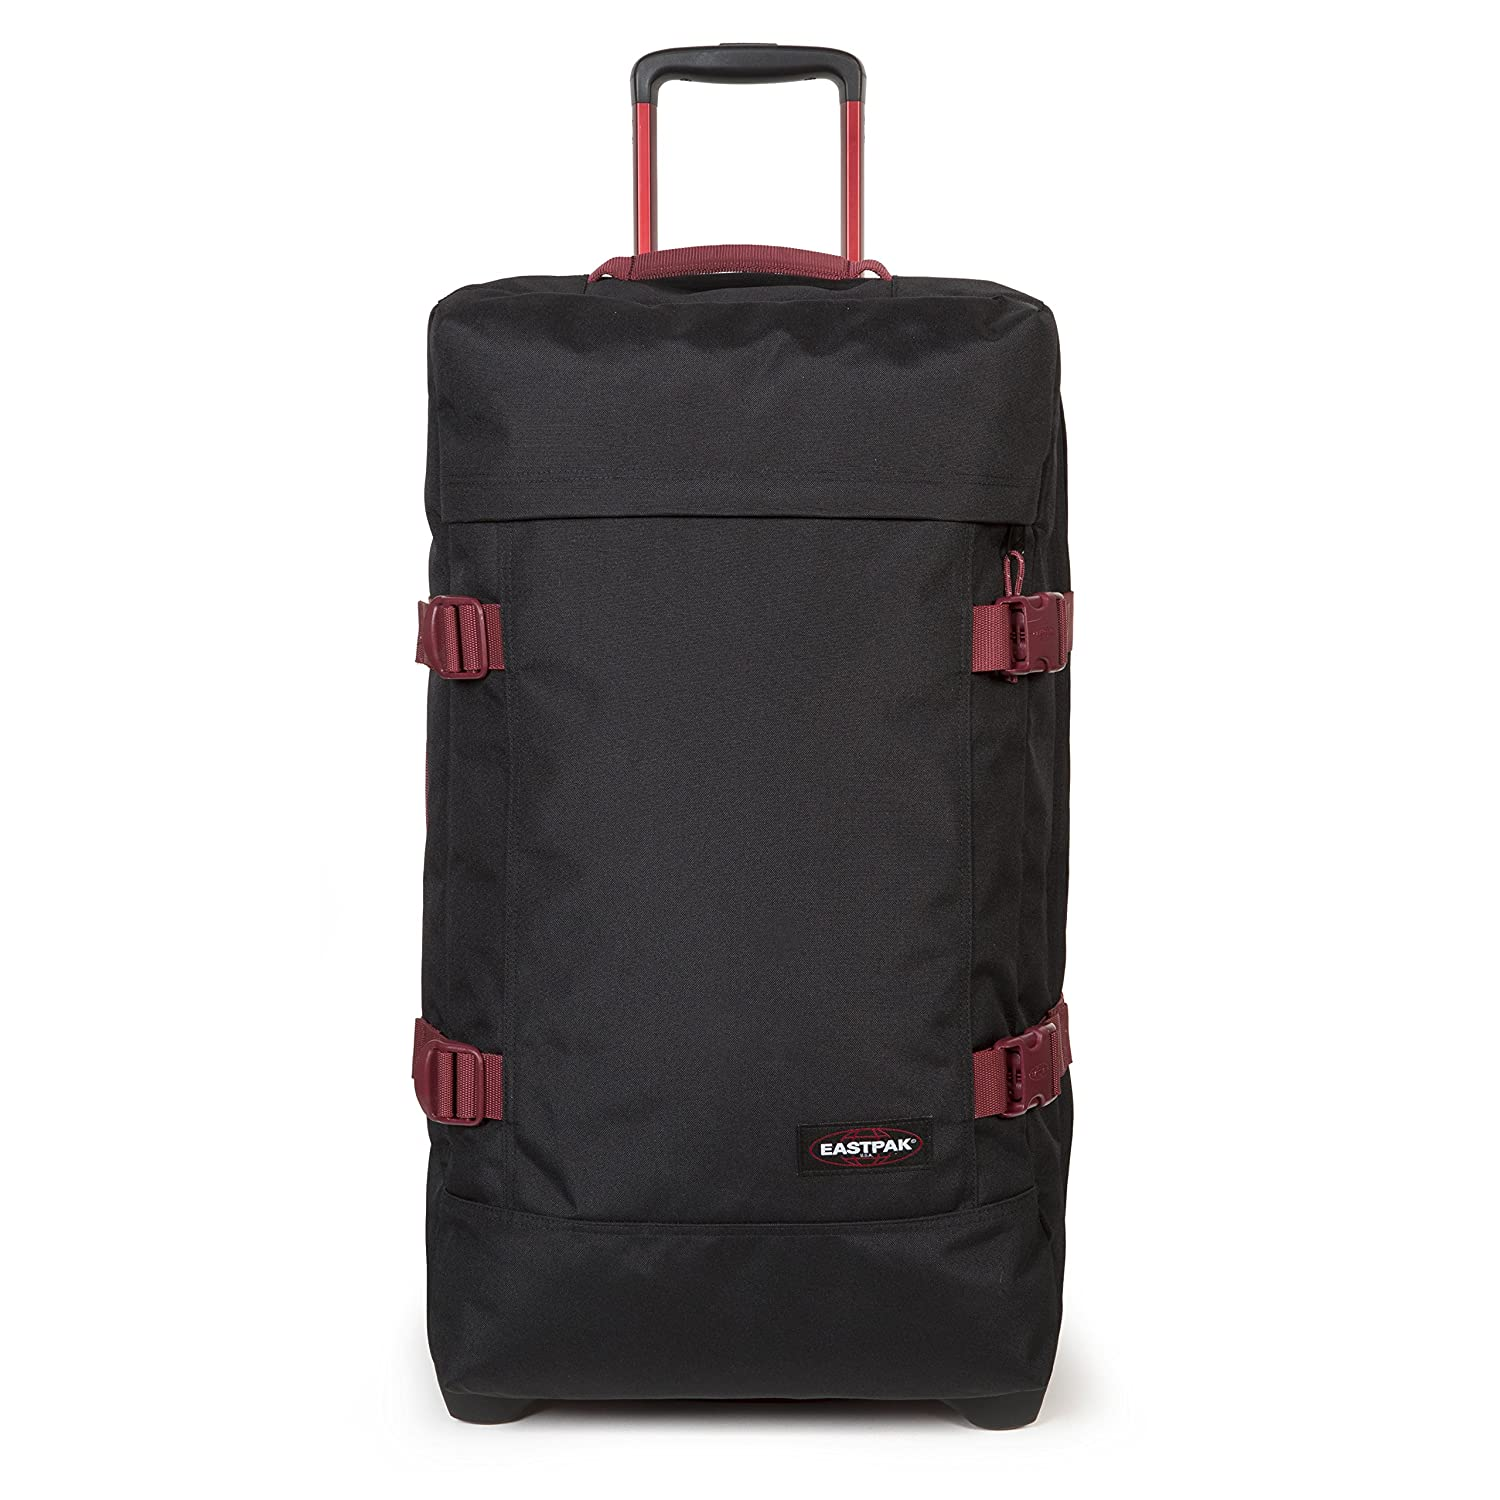 Eastpak Trolley Tranverz L 79cm Authentic 121.0 I